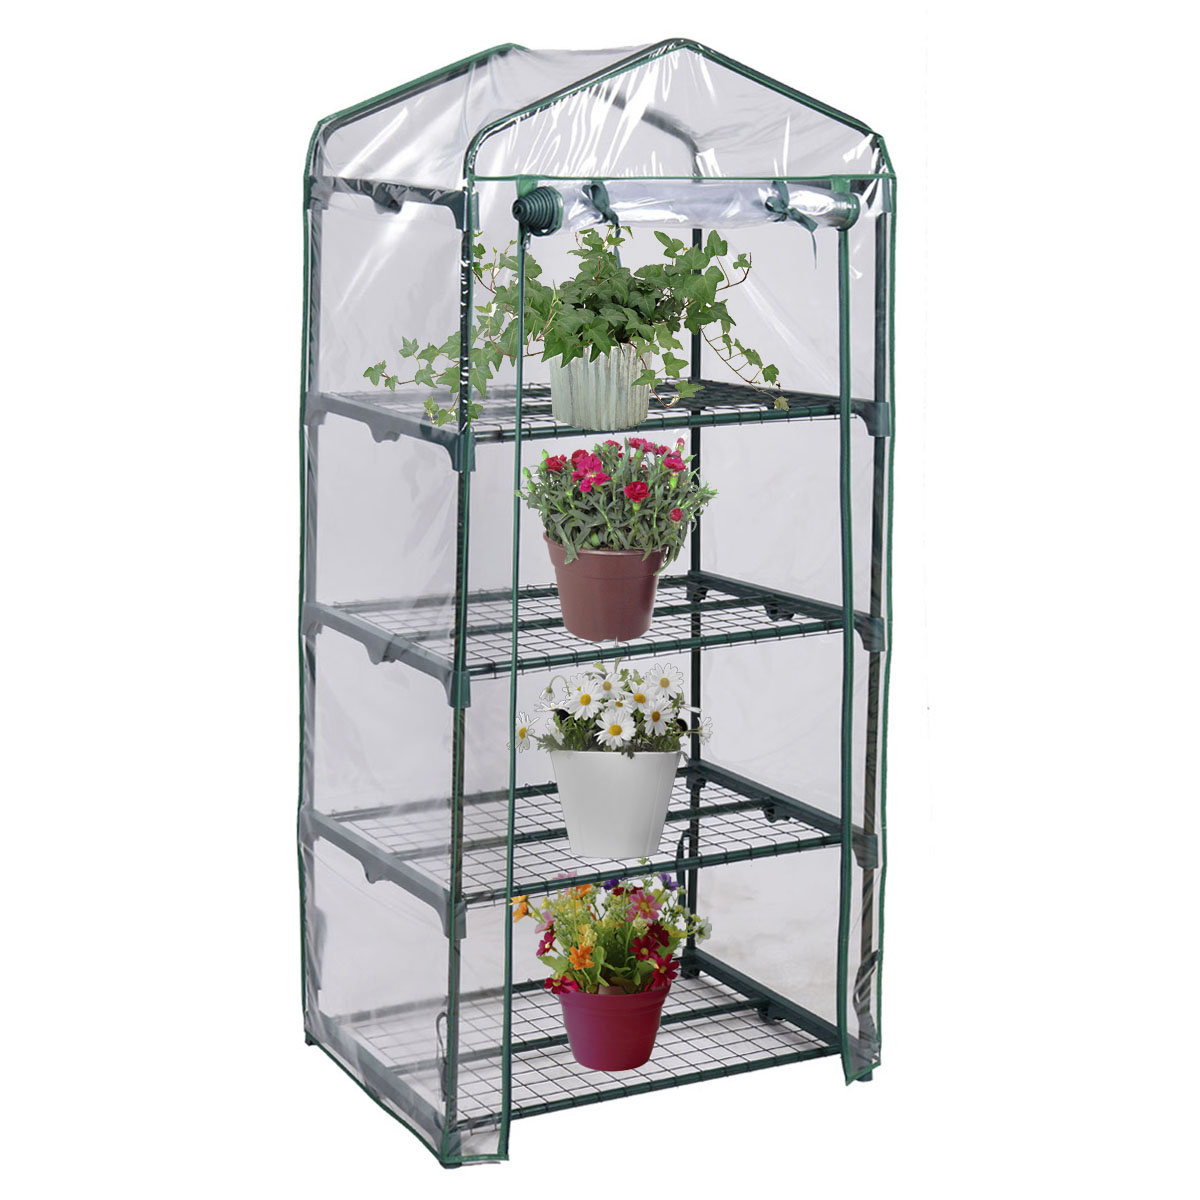 Costway Portable Mini Walk In Outdoor 4 Shelves Greenhouse